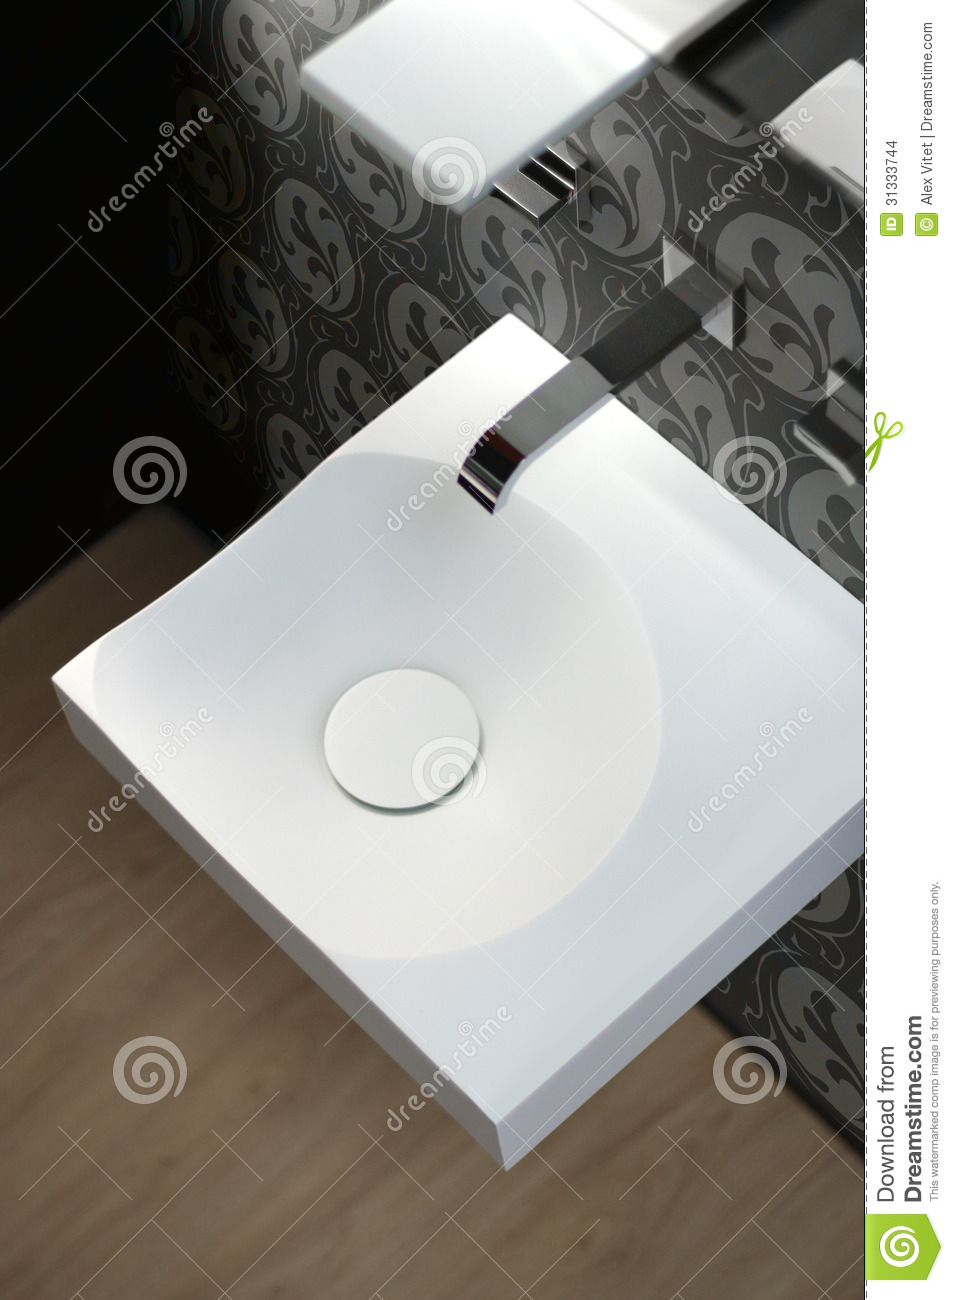 Modern sink stock photo image of sink free hung washbasin 31333744 - Designer sink image ...